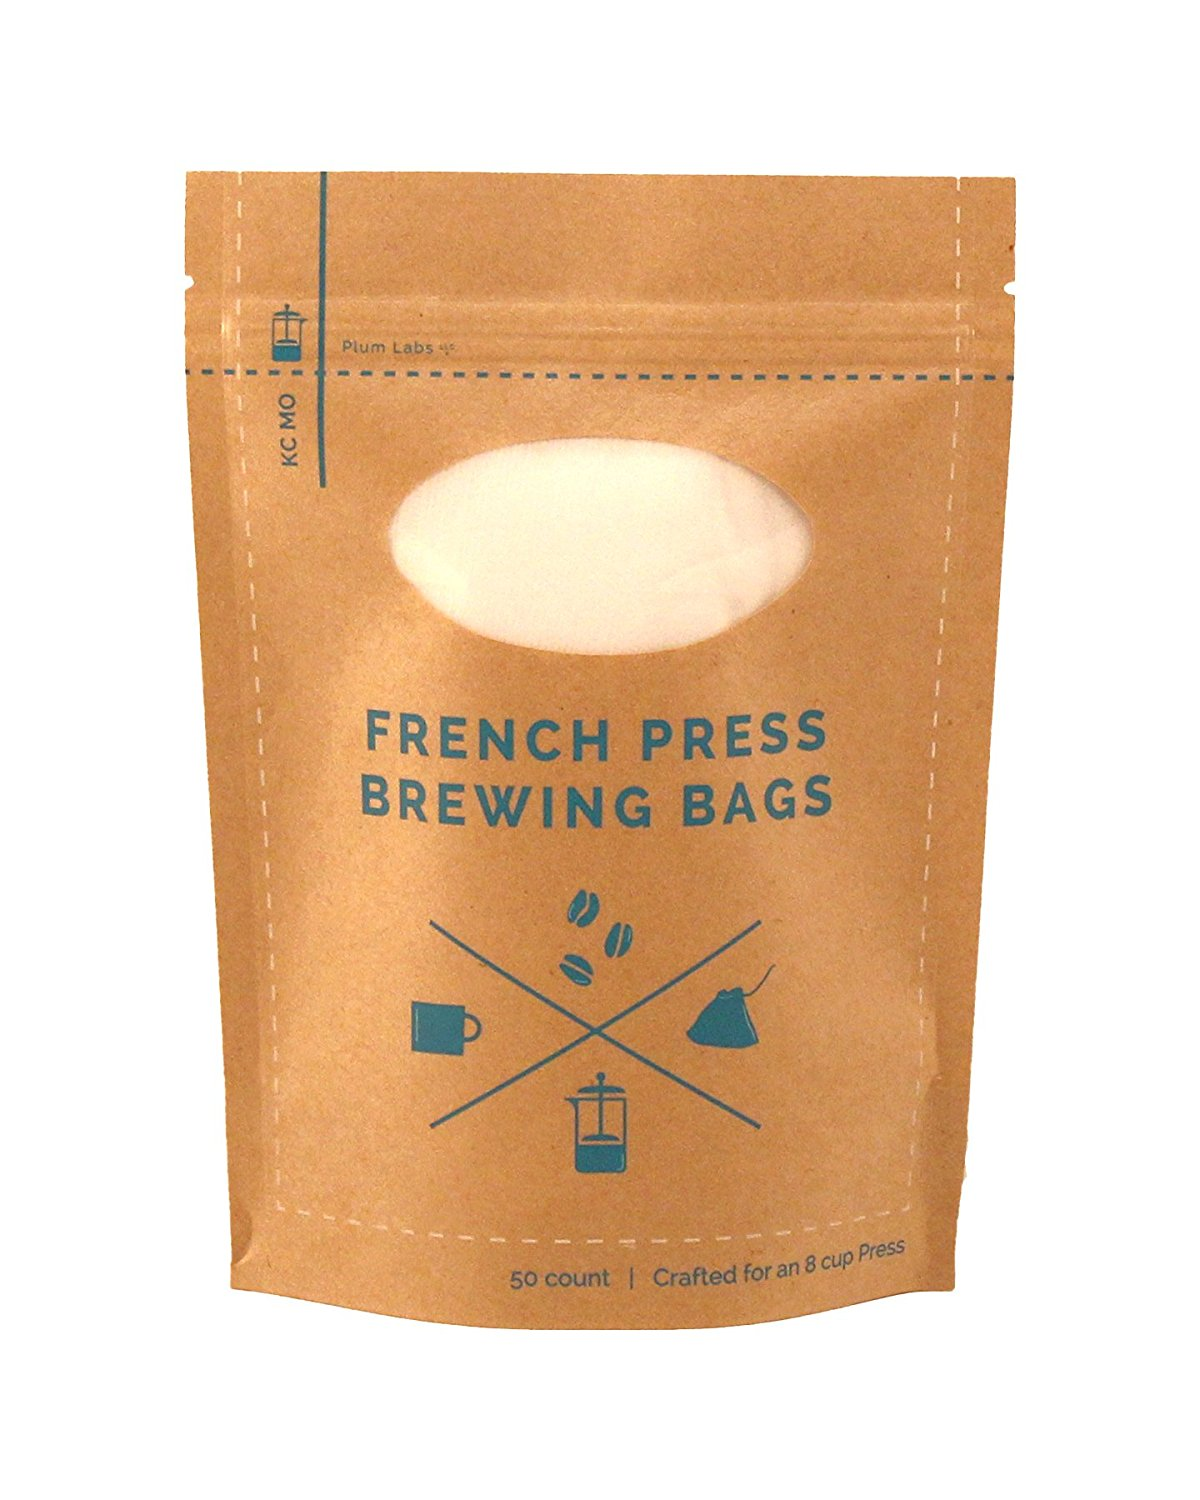 French Press Brewing Bags - 50 Easy To Use High Quality Fine Mesh Disposable Coffee Filters Designed For Your French Press - Perfect for Cold Brewing in Mason Jars, Hops Bags for Beer, (50 Pack)